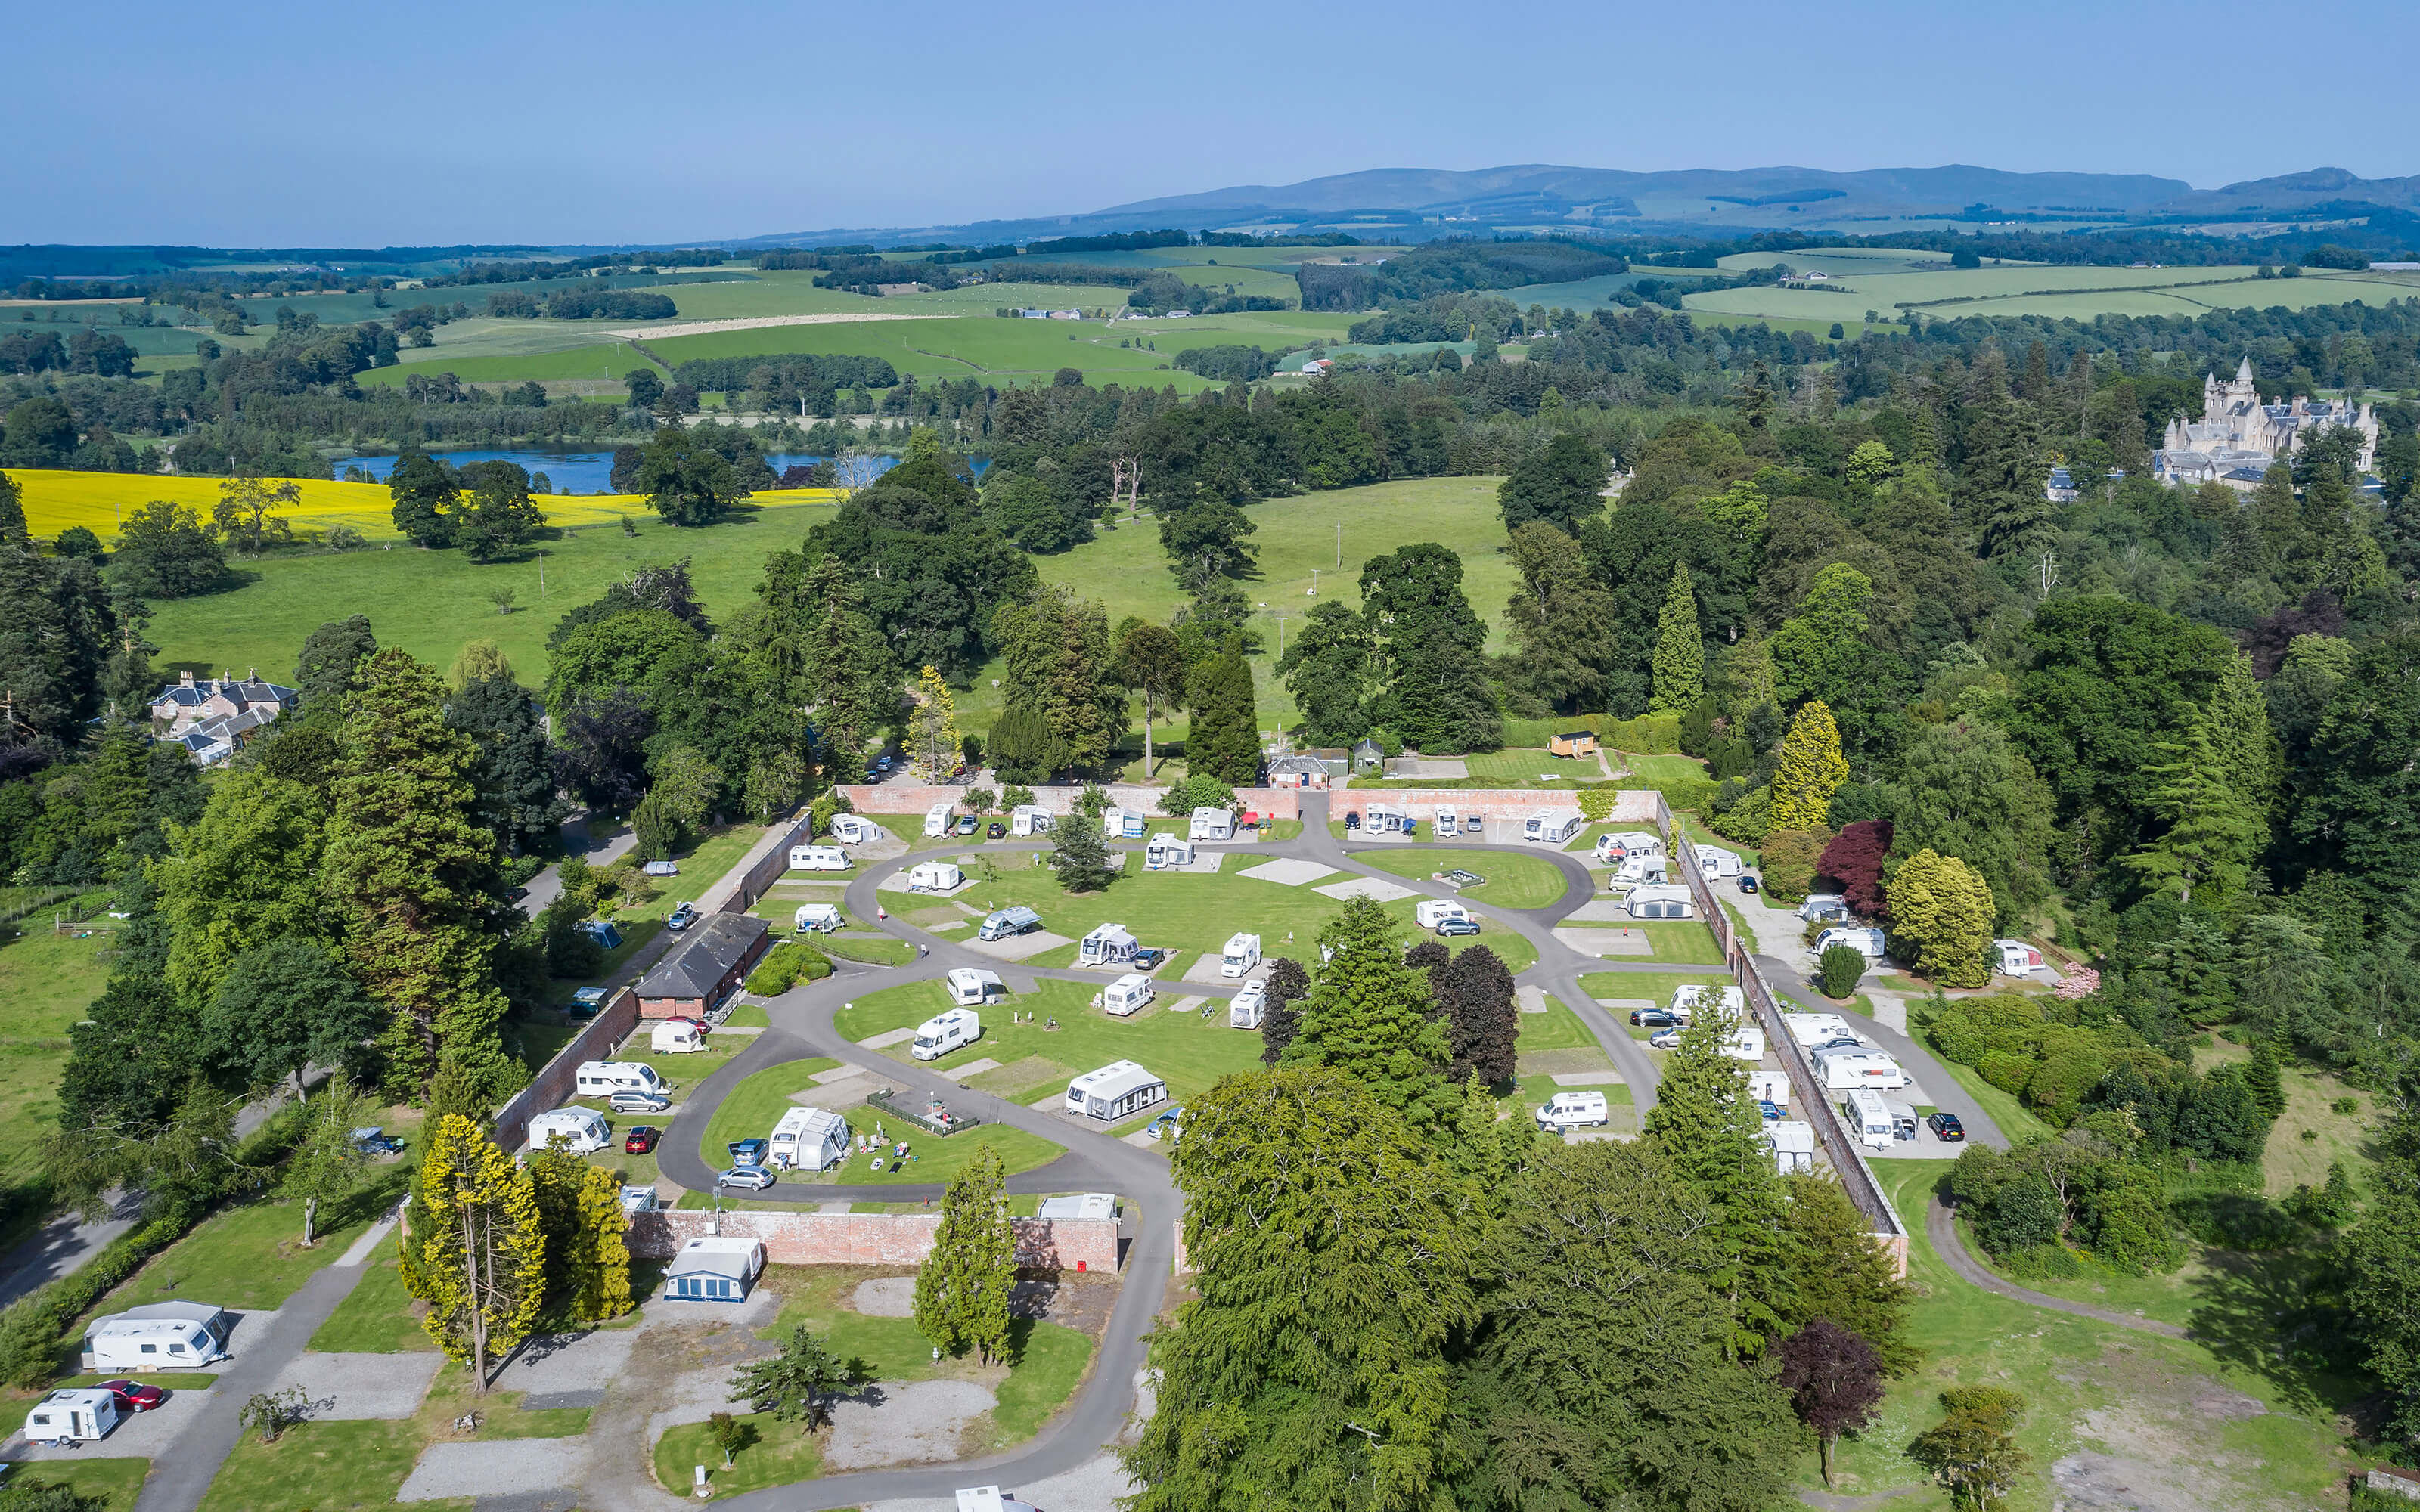 An aerial photograph of the whole caravan park site.